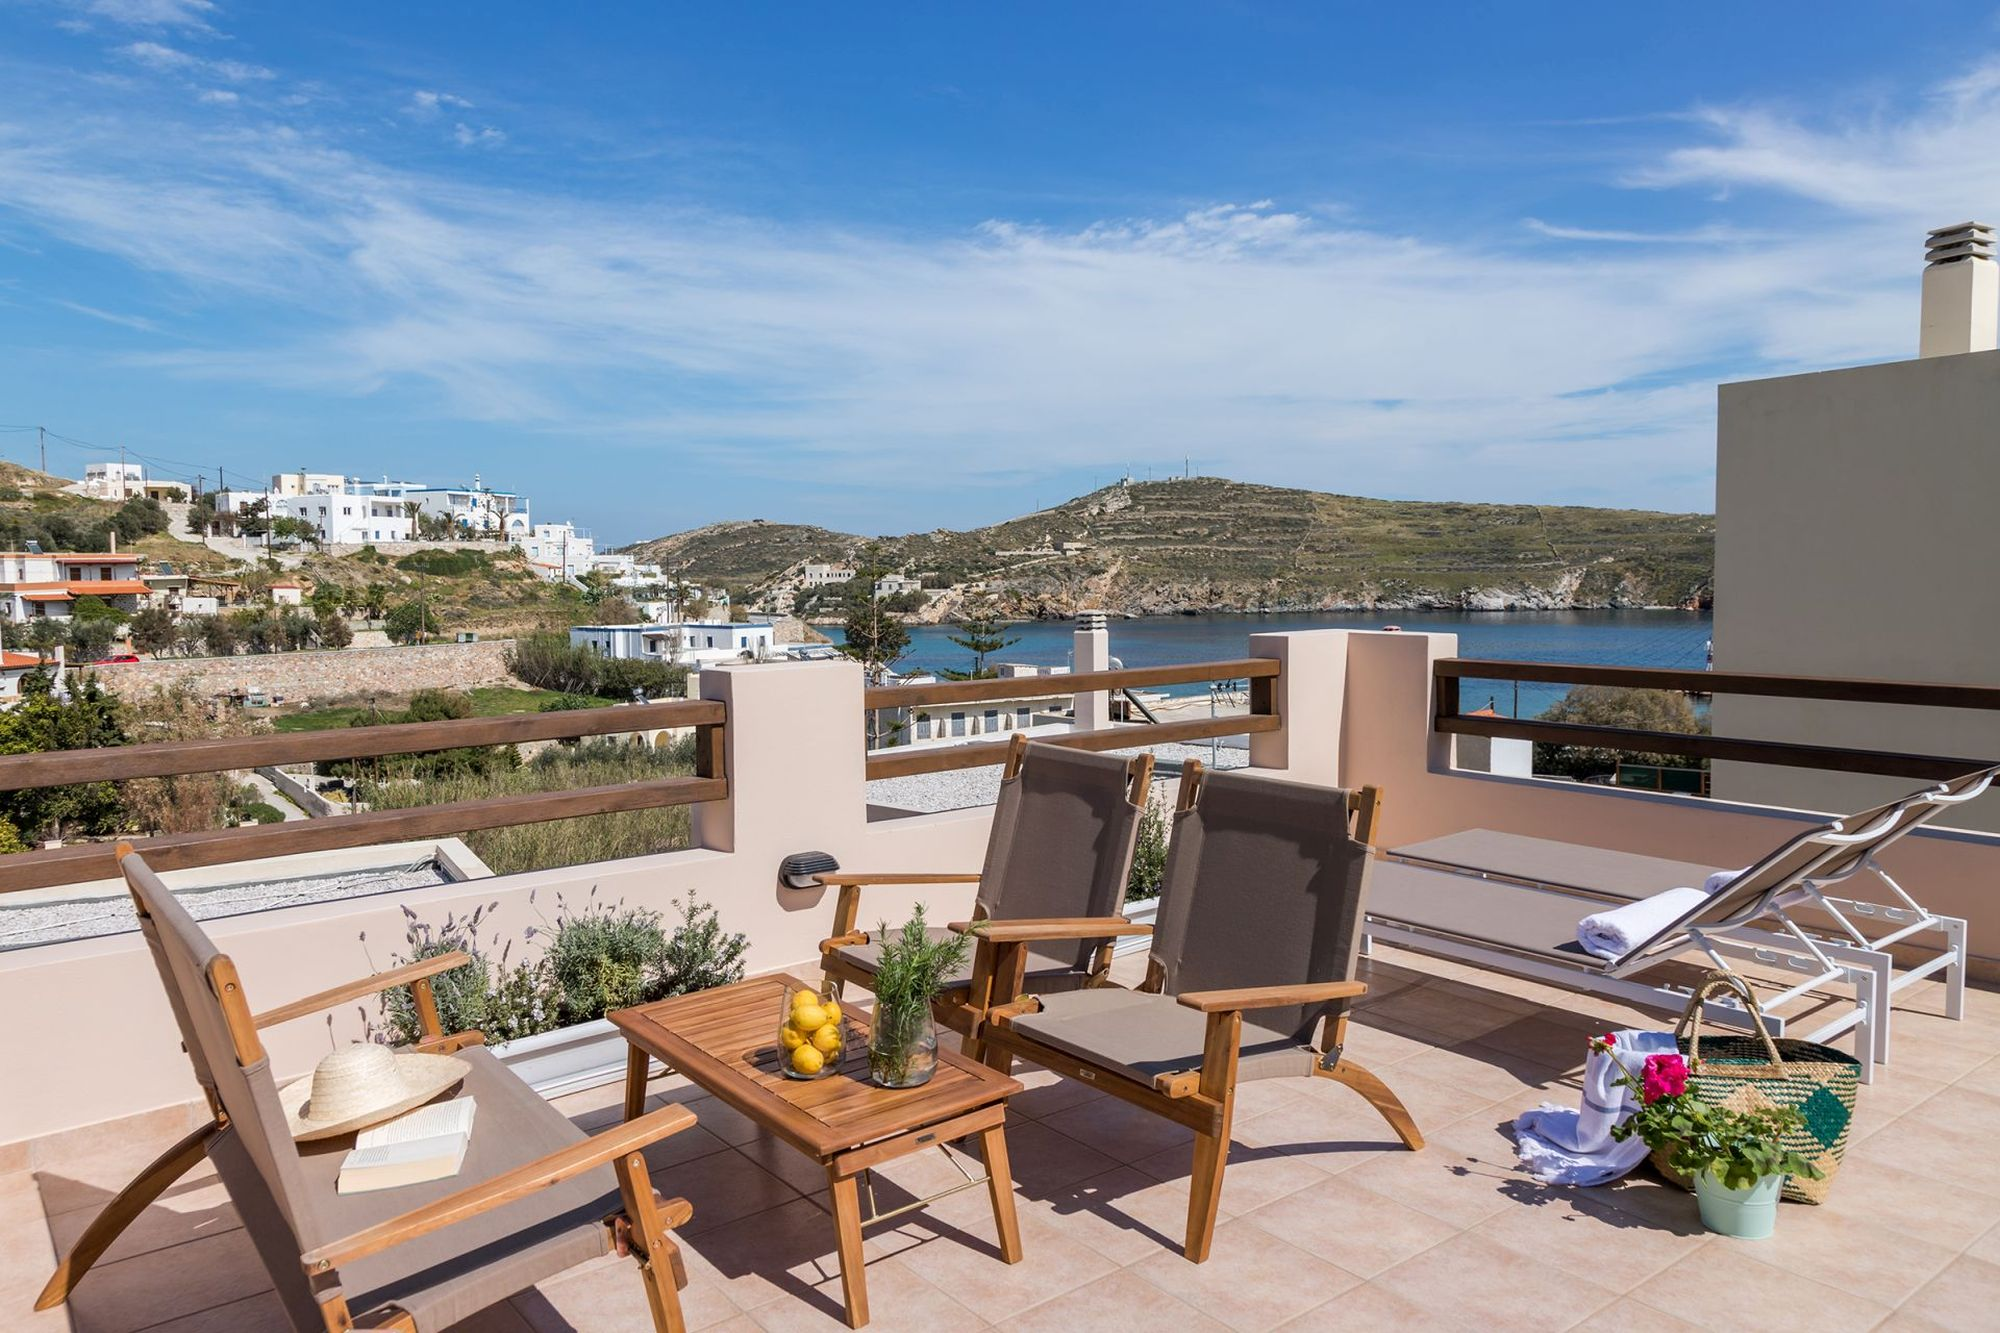 Spacious sea view veranda with lounge, two sunbeds and lovely flowerpots.